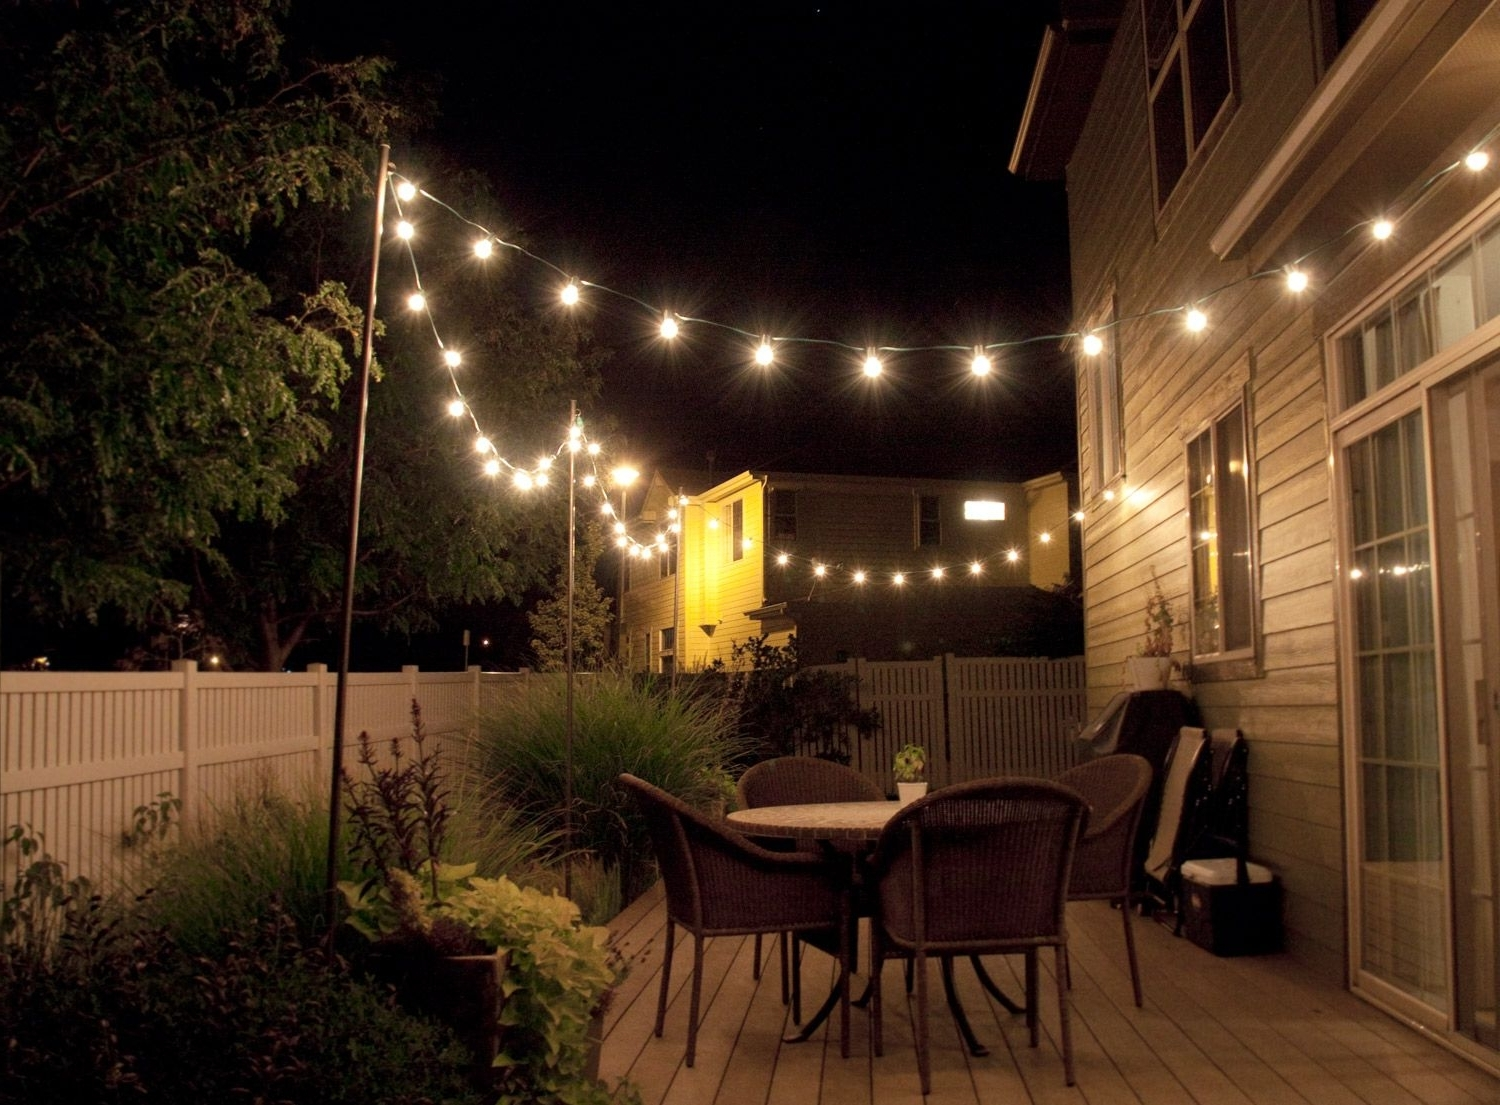 How To Make Inexpensive Poles To Hang String Lights On – Café Style Intended For Latest Outdoor Hanging Fairy Lights (Gallery 1 of 20)